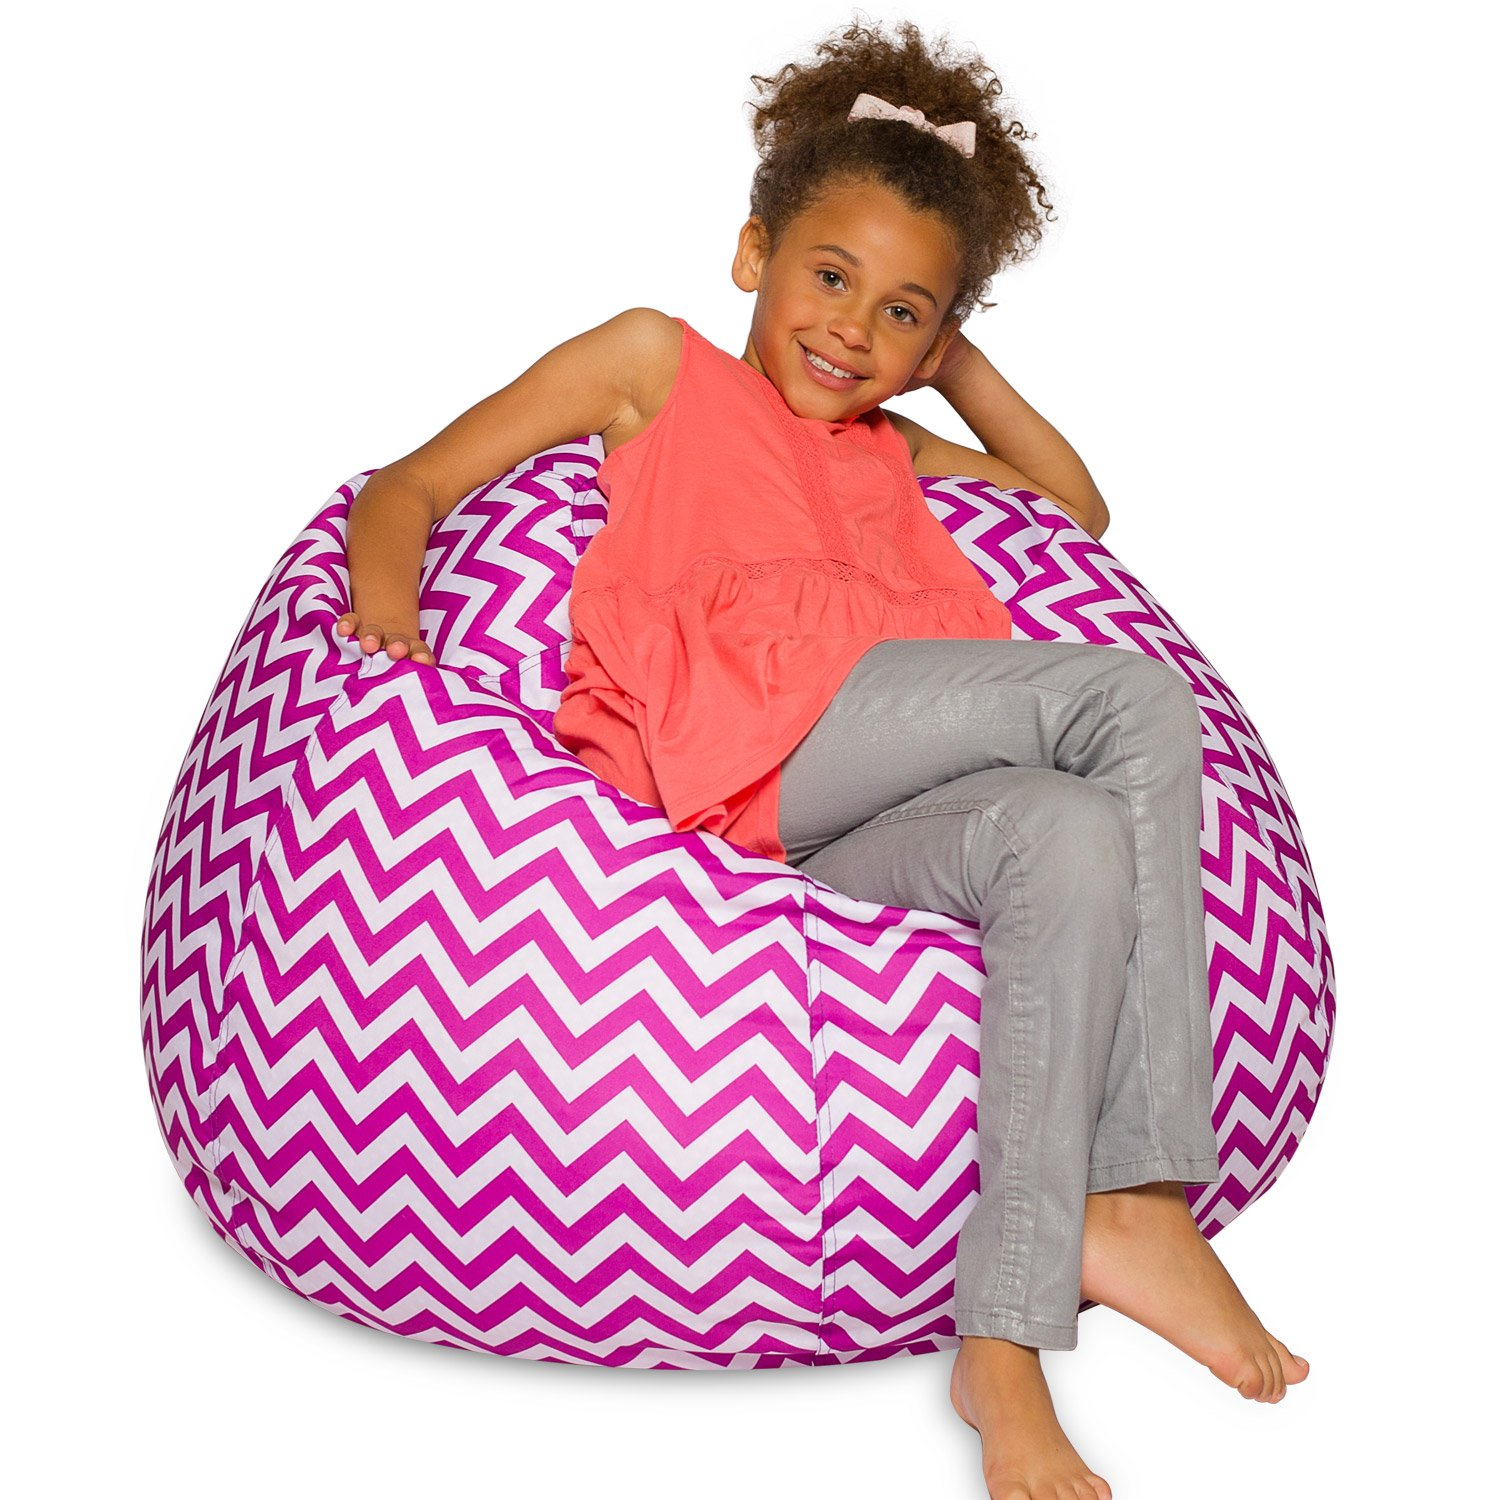 "27"" Patterned Bean Bag for Teens Adults & Children Pink and White Posh Beanbags AMZ-27-Chev-PW"